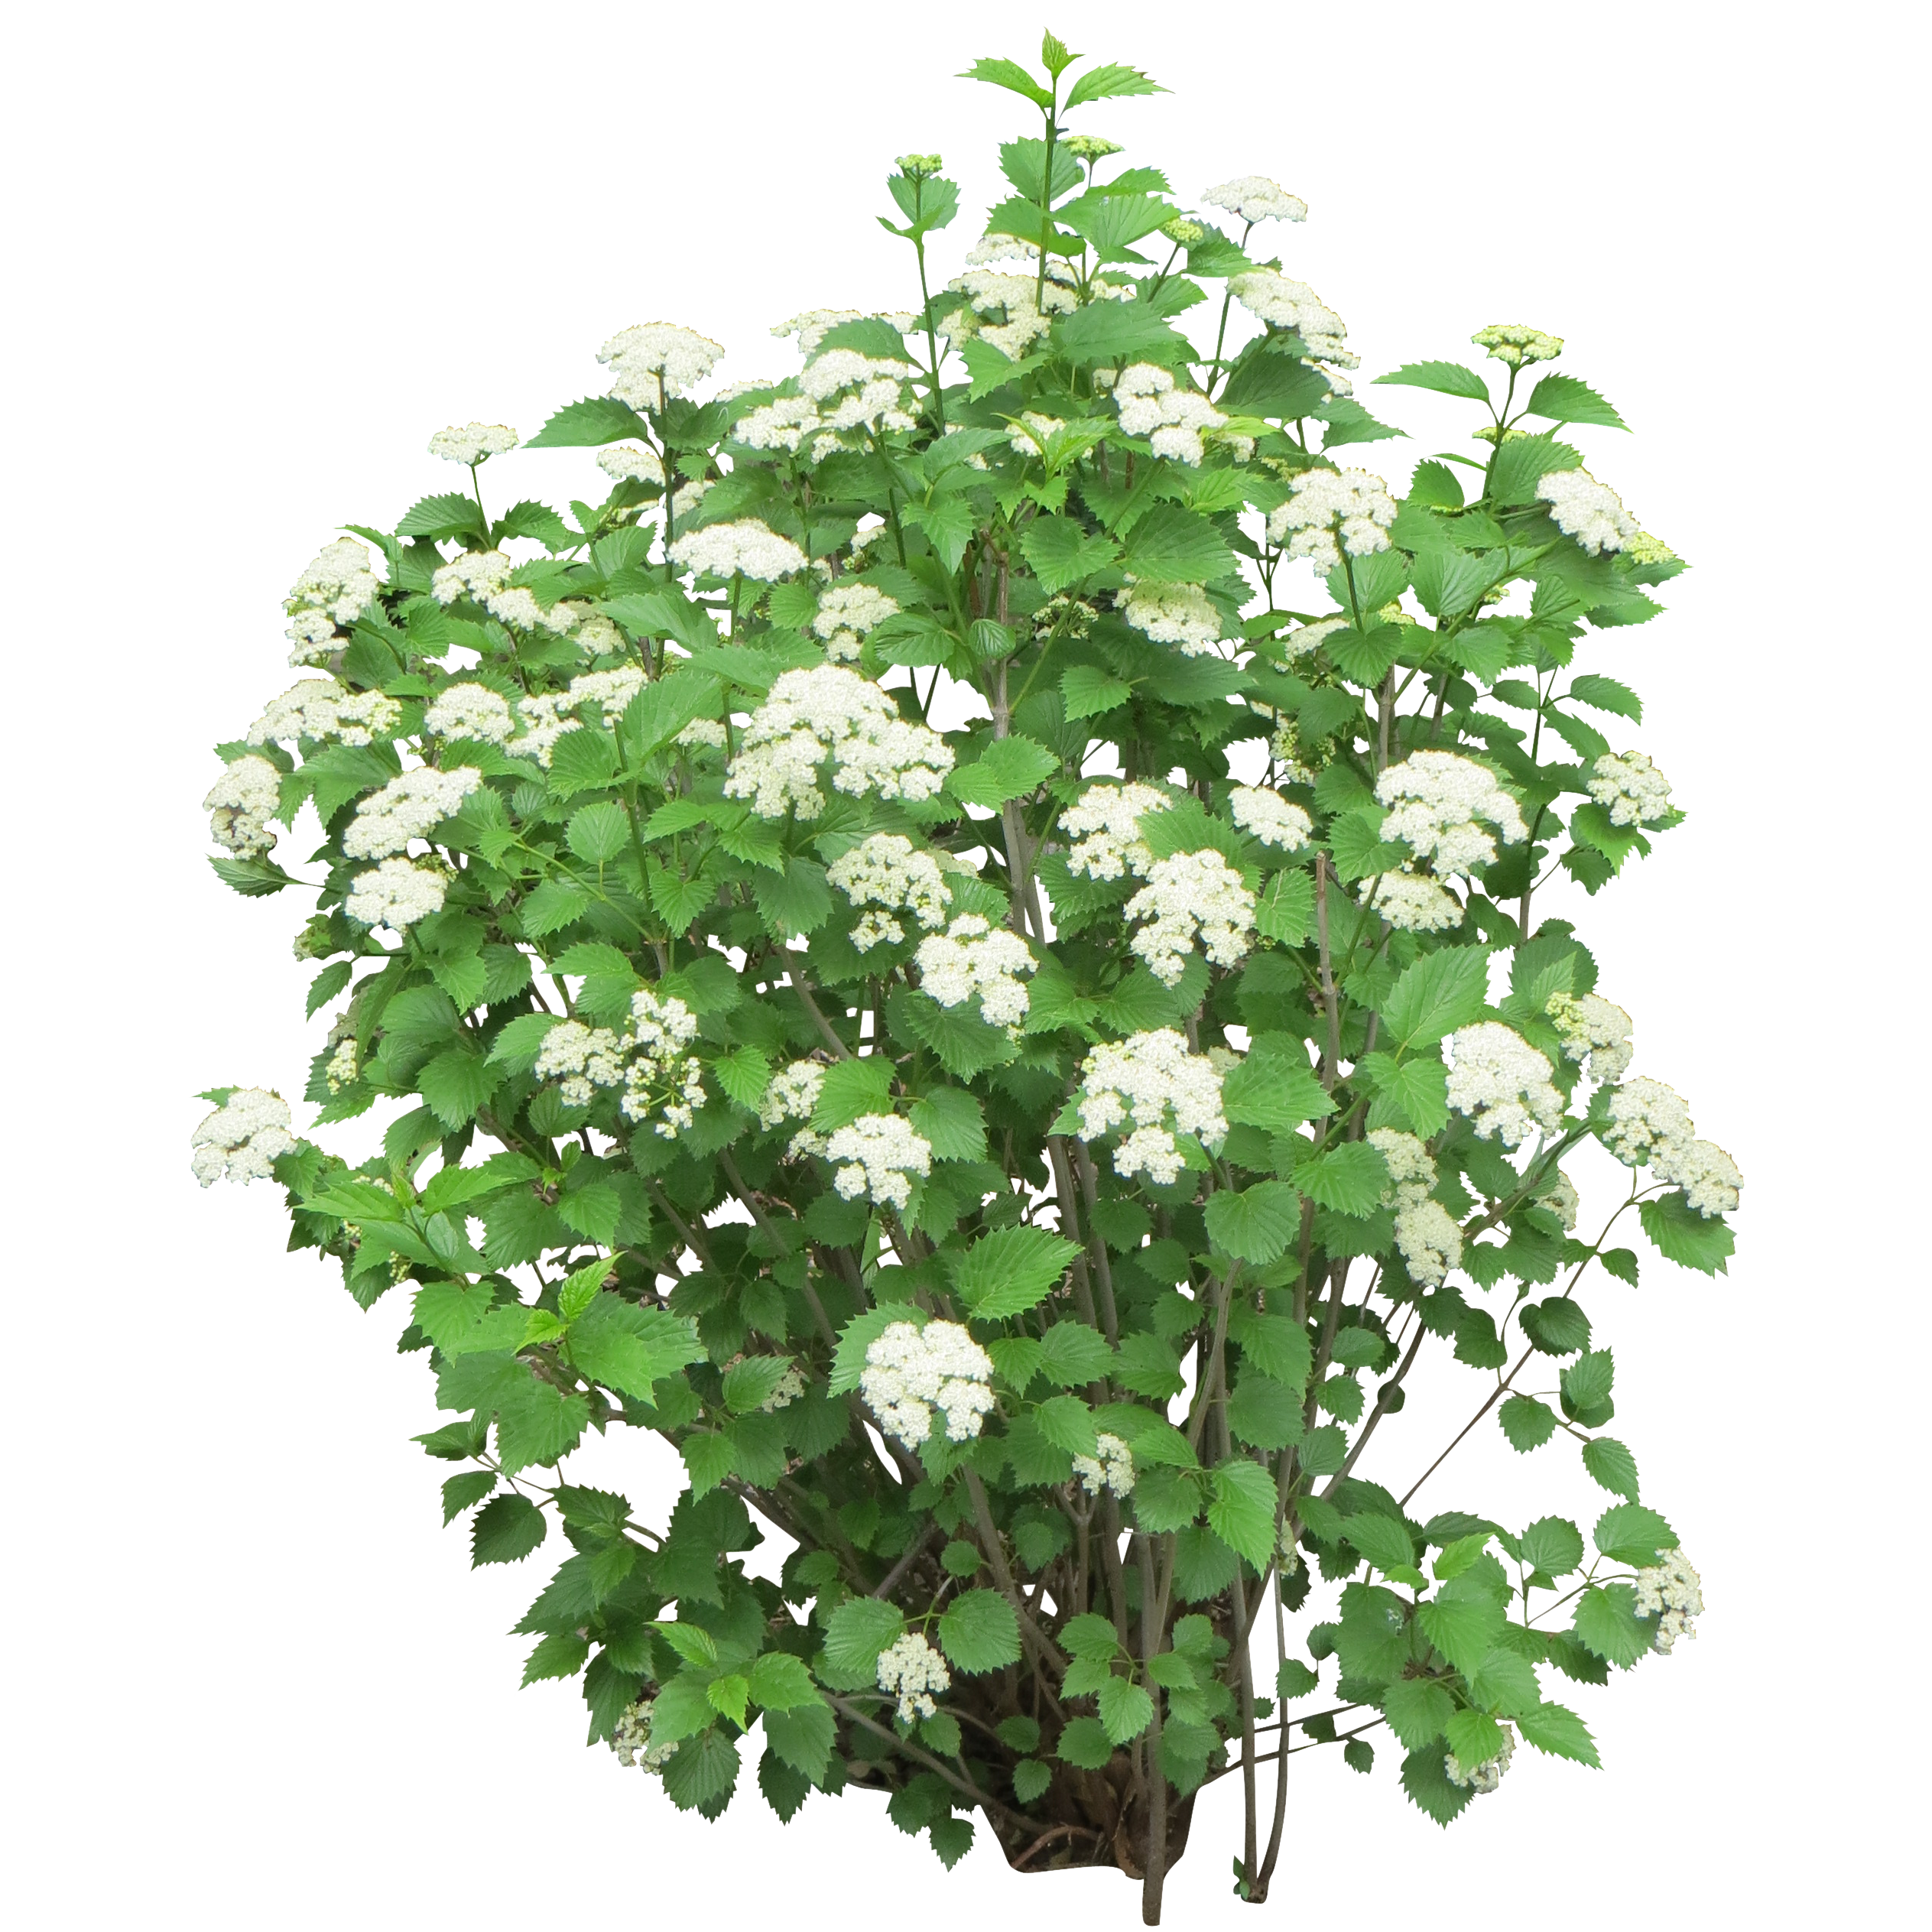 Cutout Of Bush With White Flowers 2811 Free Icons And Png Backgrounds